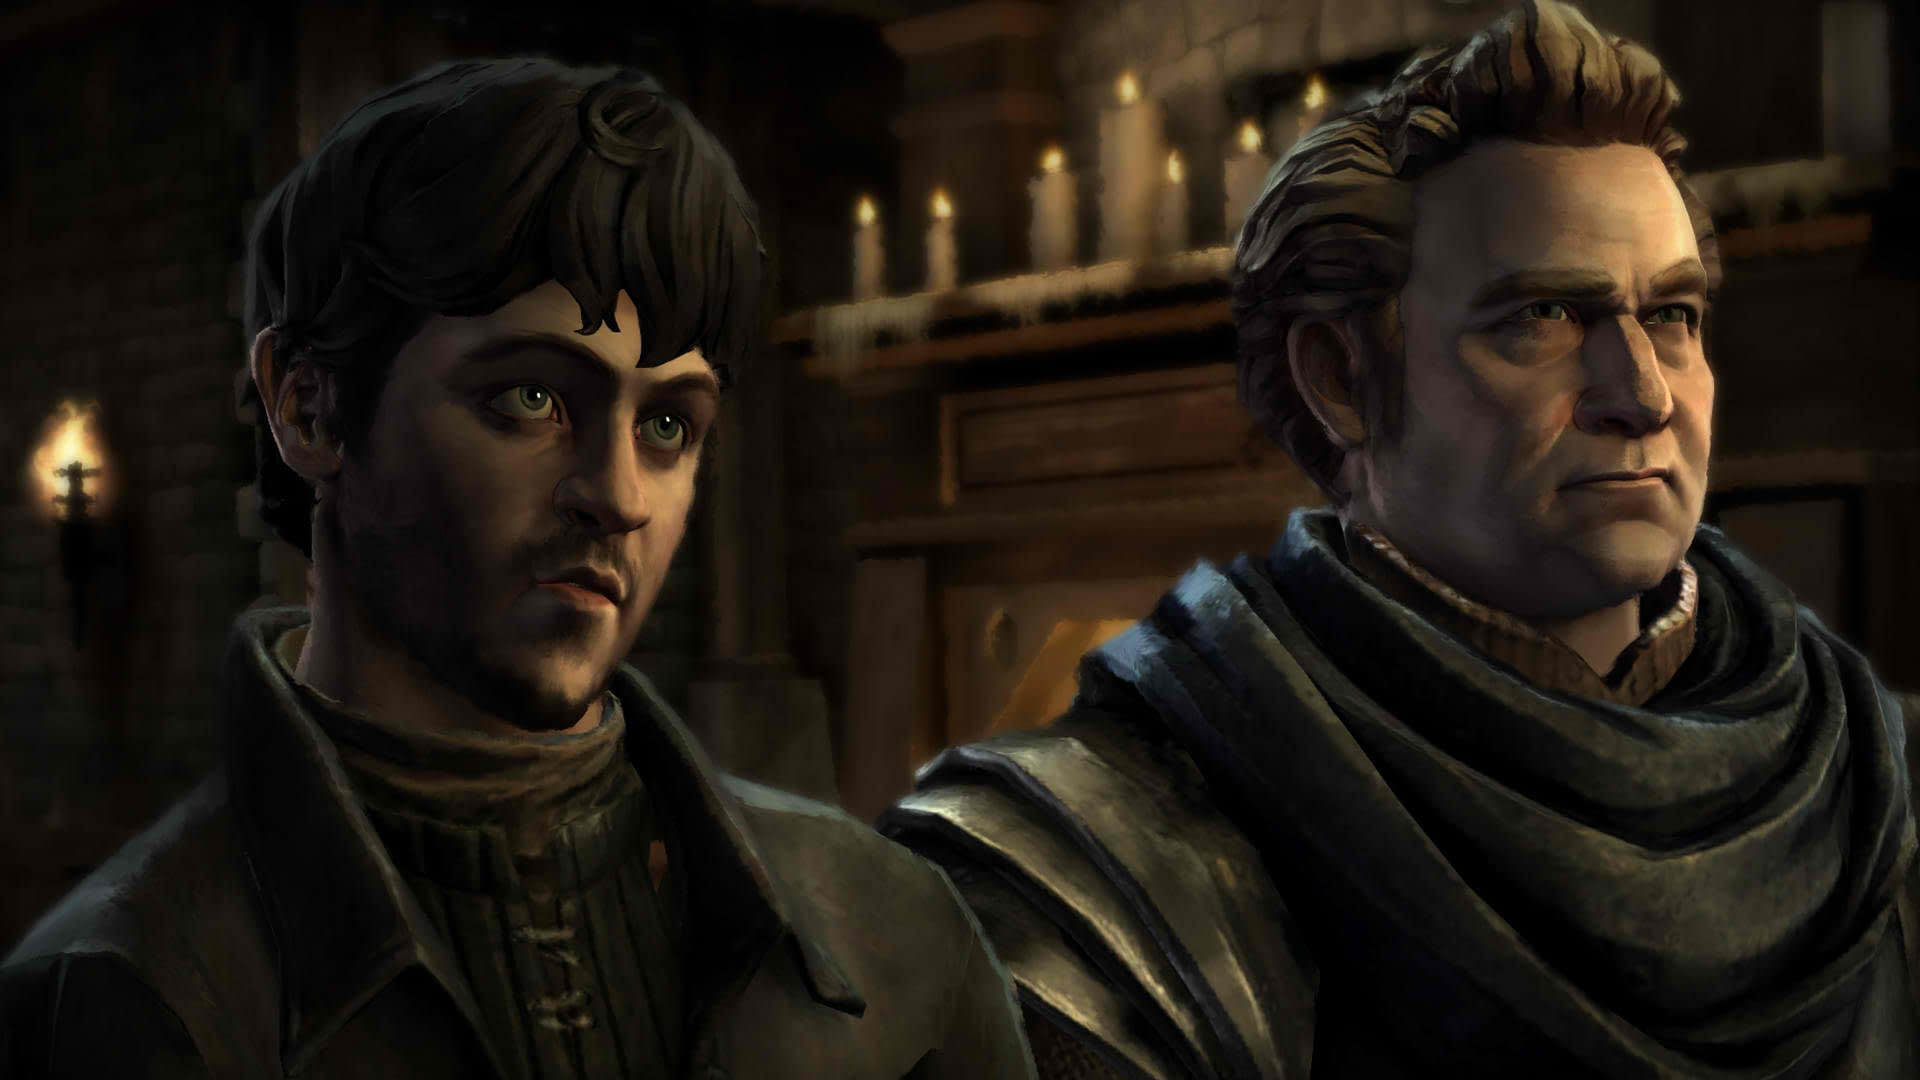 Ramsay bolton game of thrones telltale games